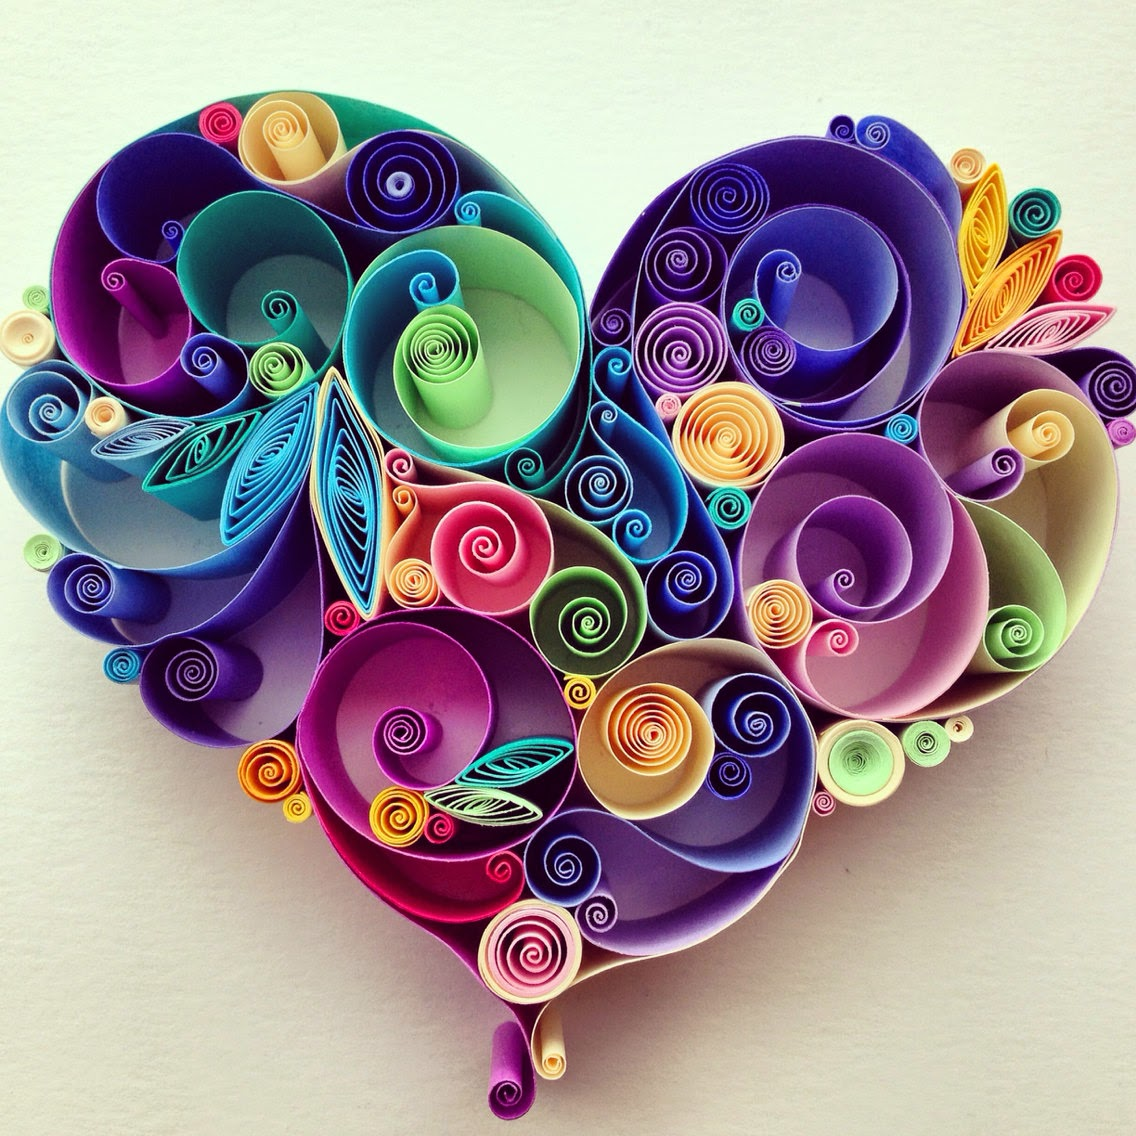 05-Love-is-All-Around-Sena-Runa-Drawing-and-Quilling-a-match-made-in-Heaven-www-designstack-co